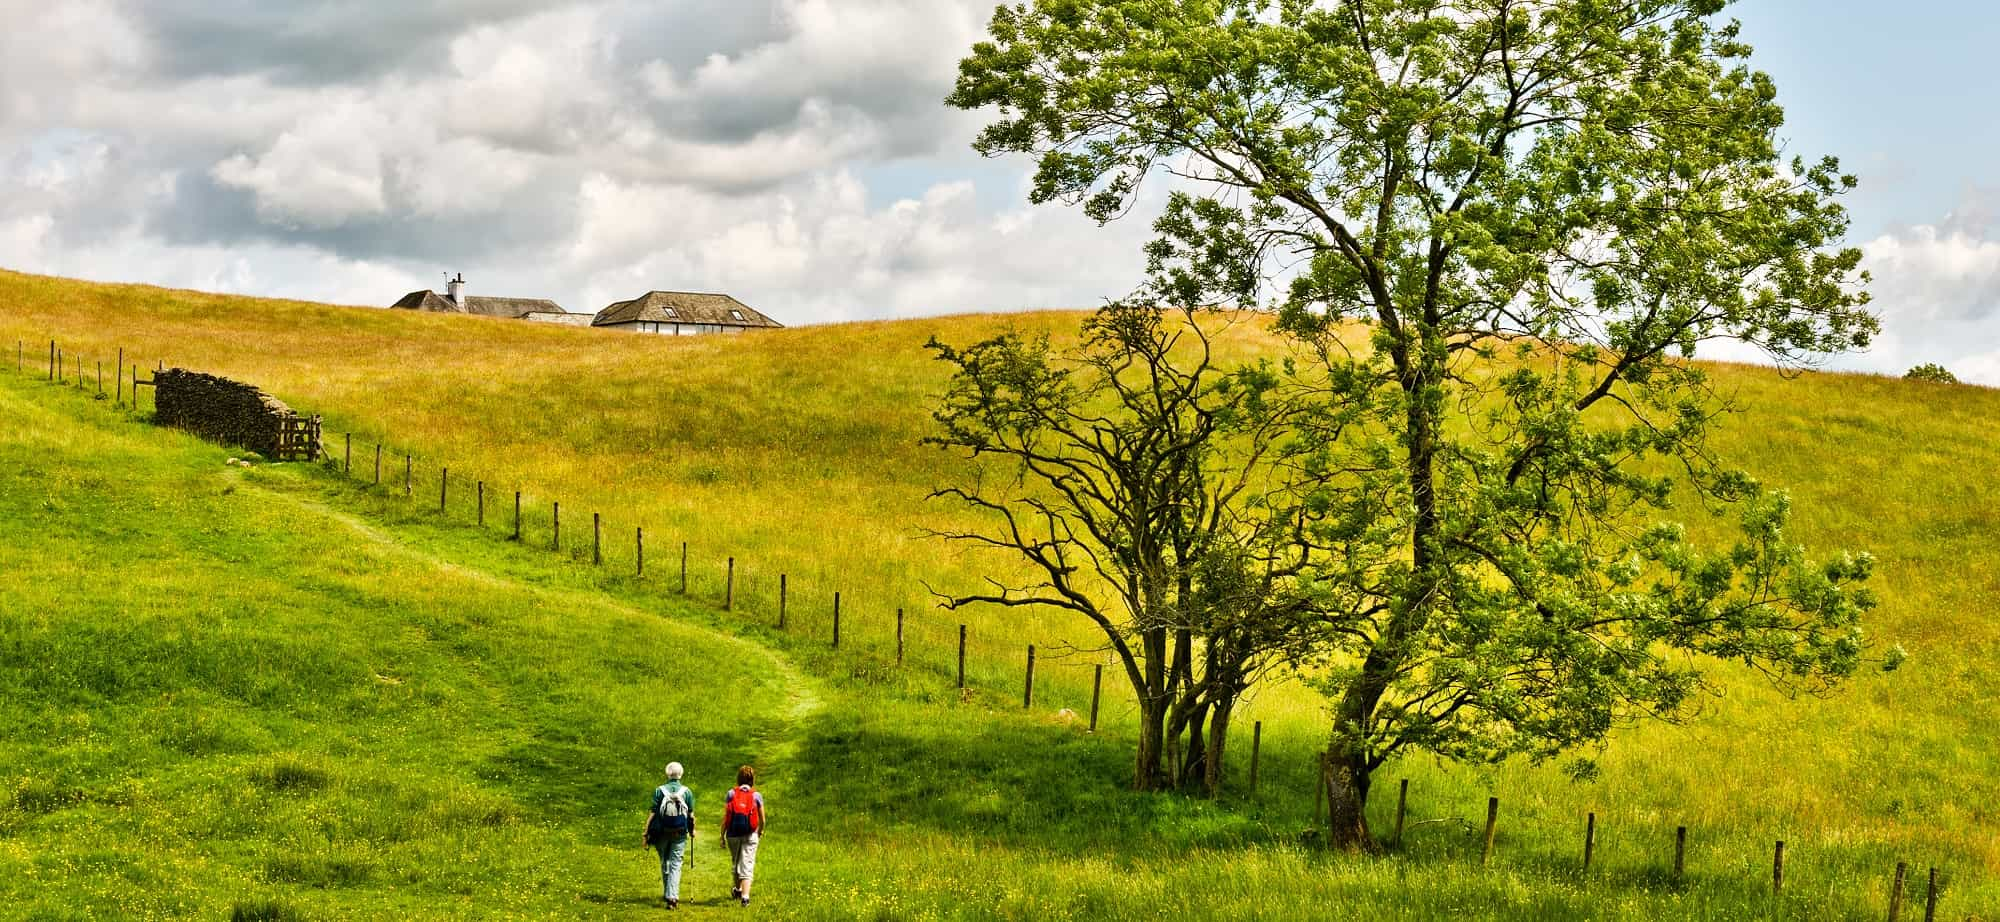 Two people walking through a golden meadow near Far Sawrey, Cumbria, in the English Lake District National Park